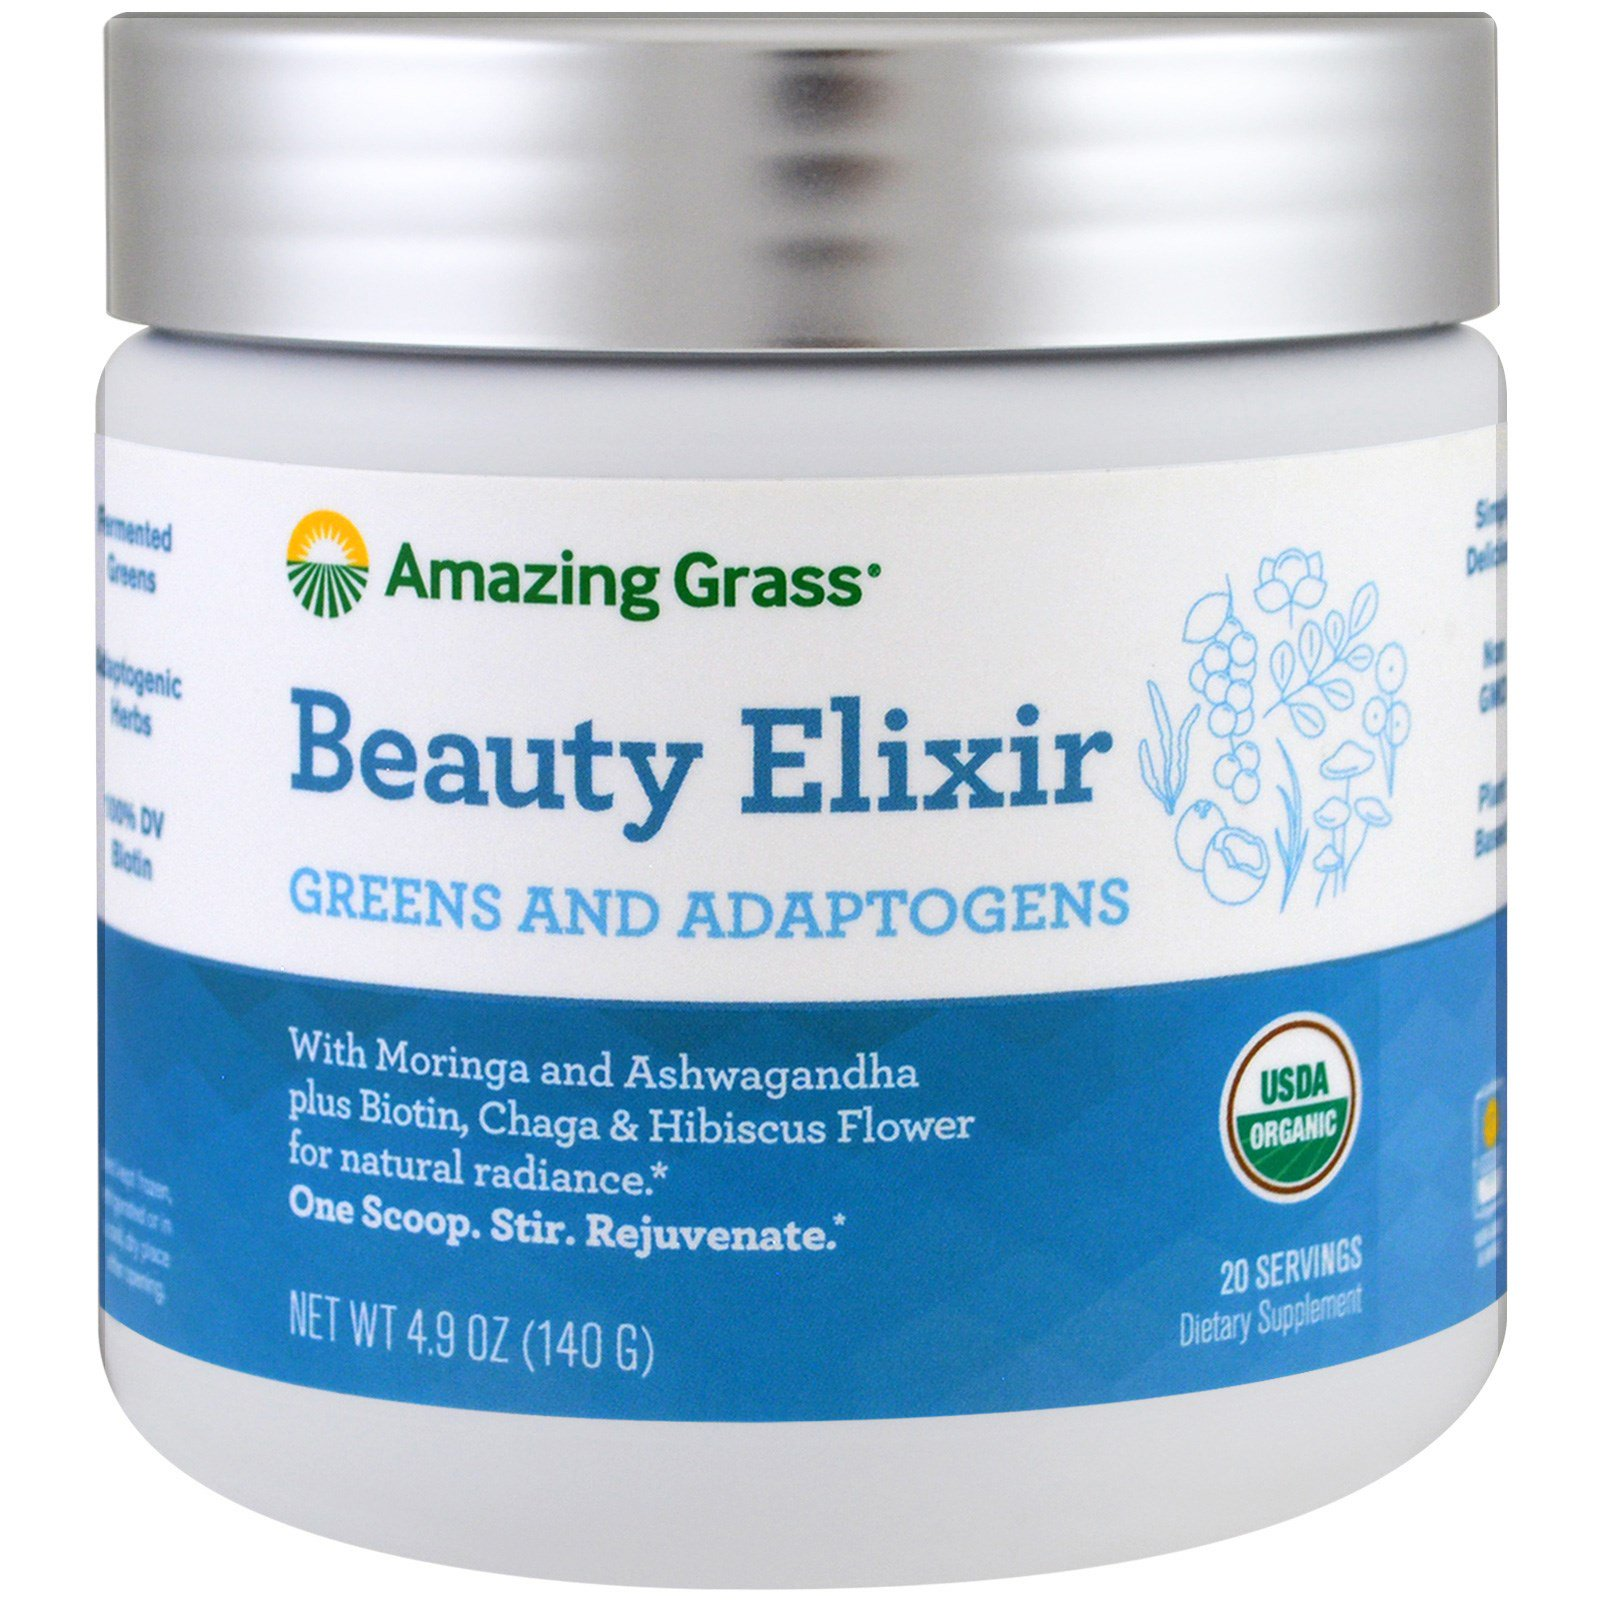 Amazing Grass, Beauty Elixir, Greens And Adaptogens, 4 9 oz